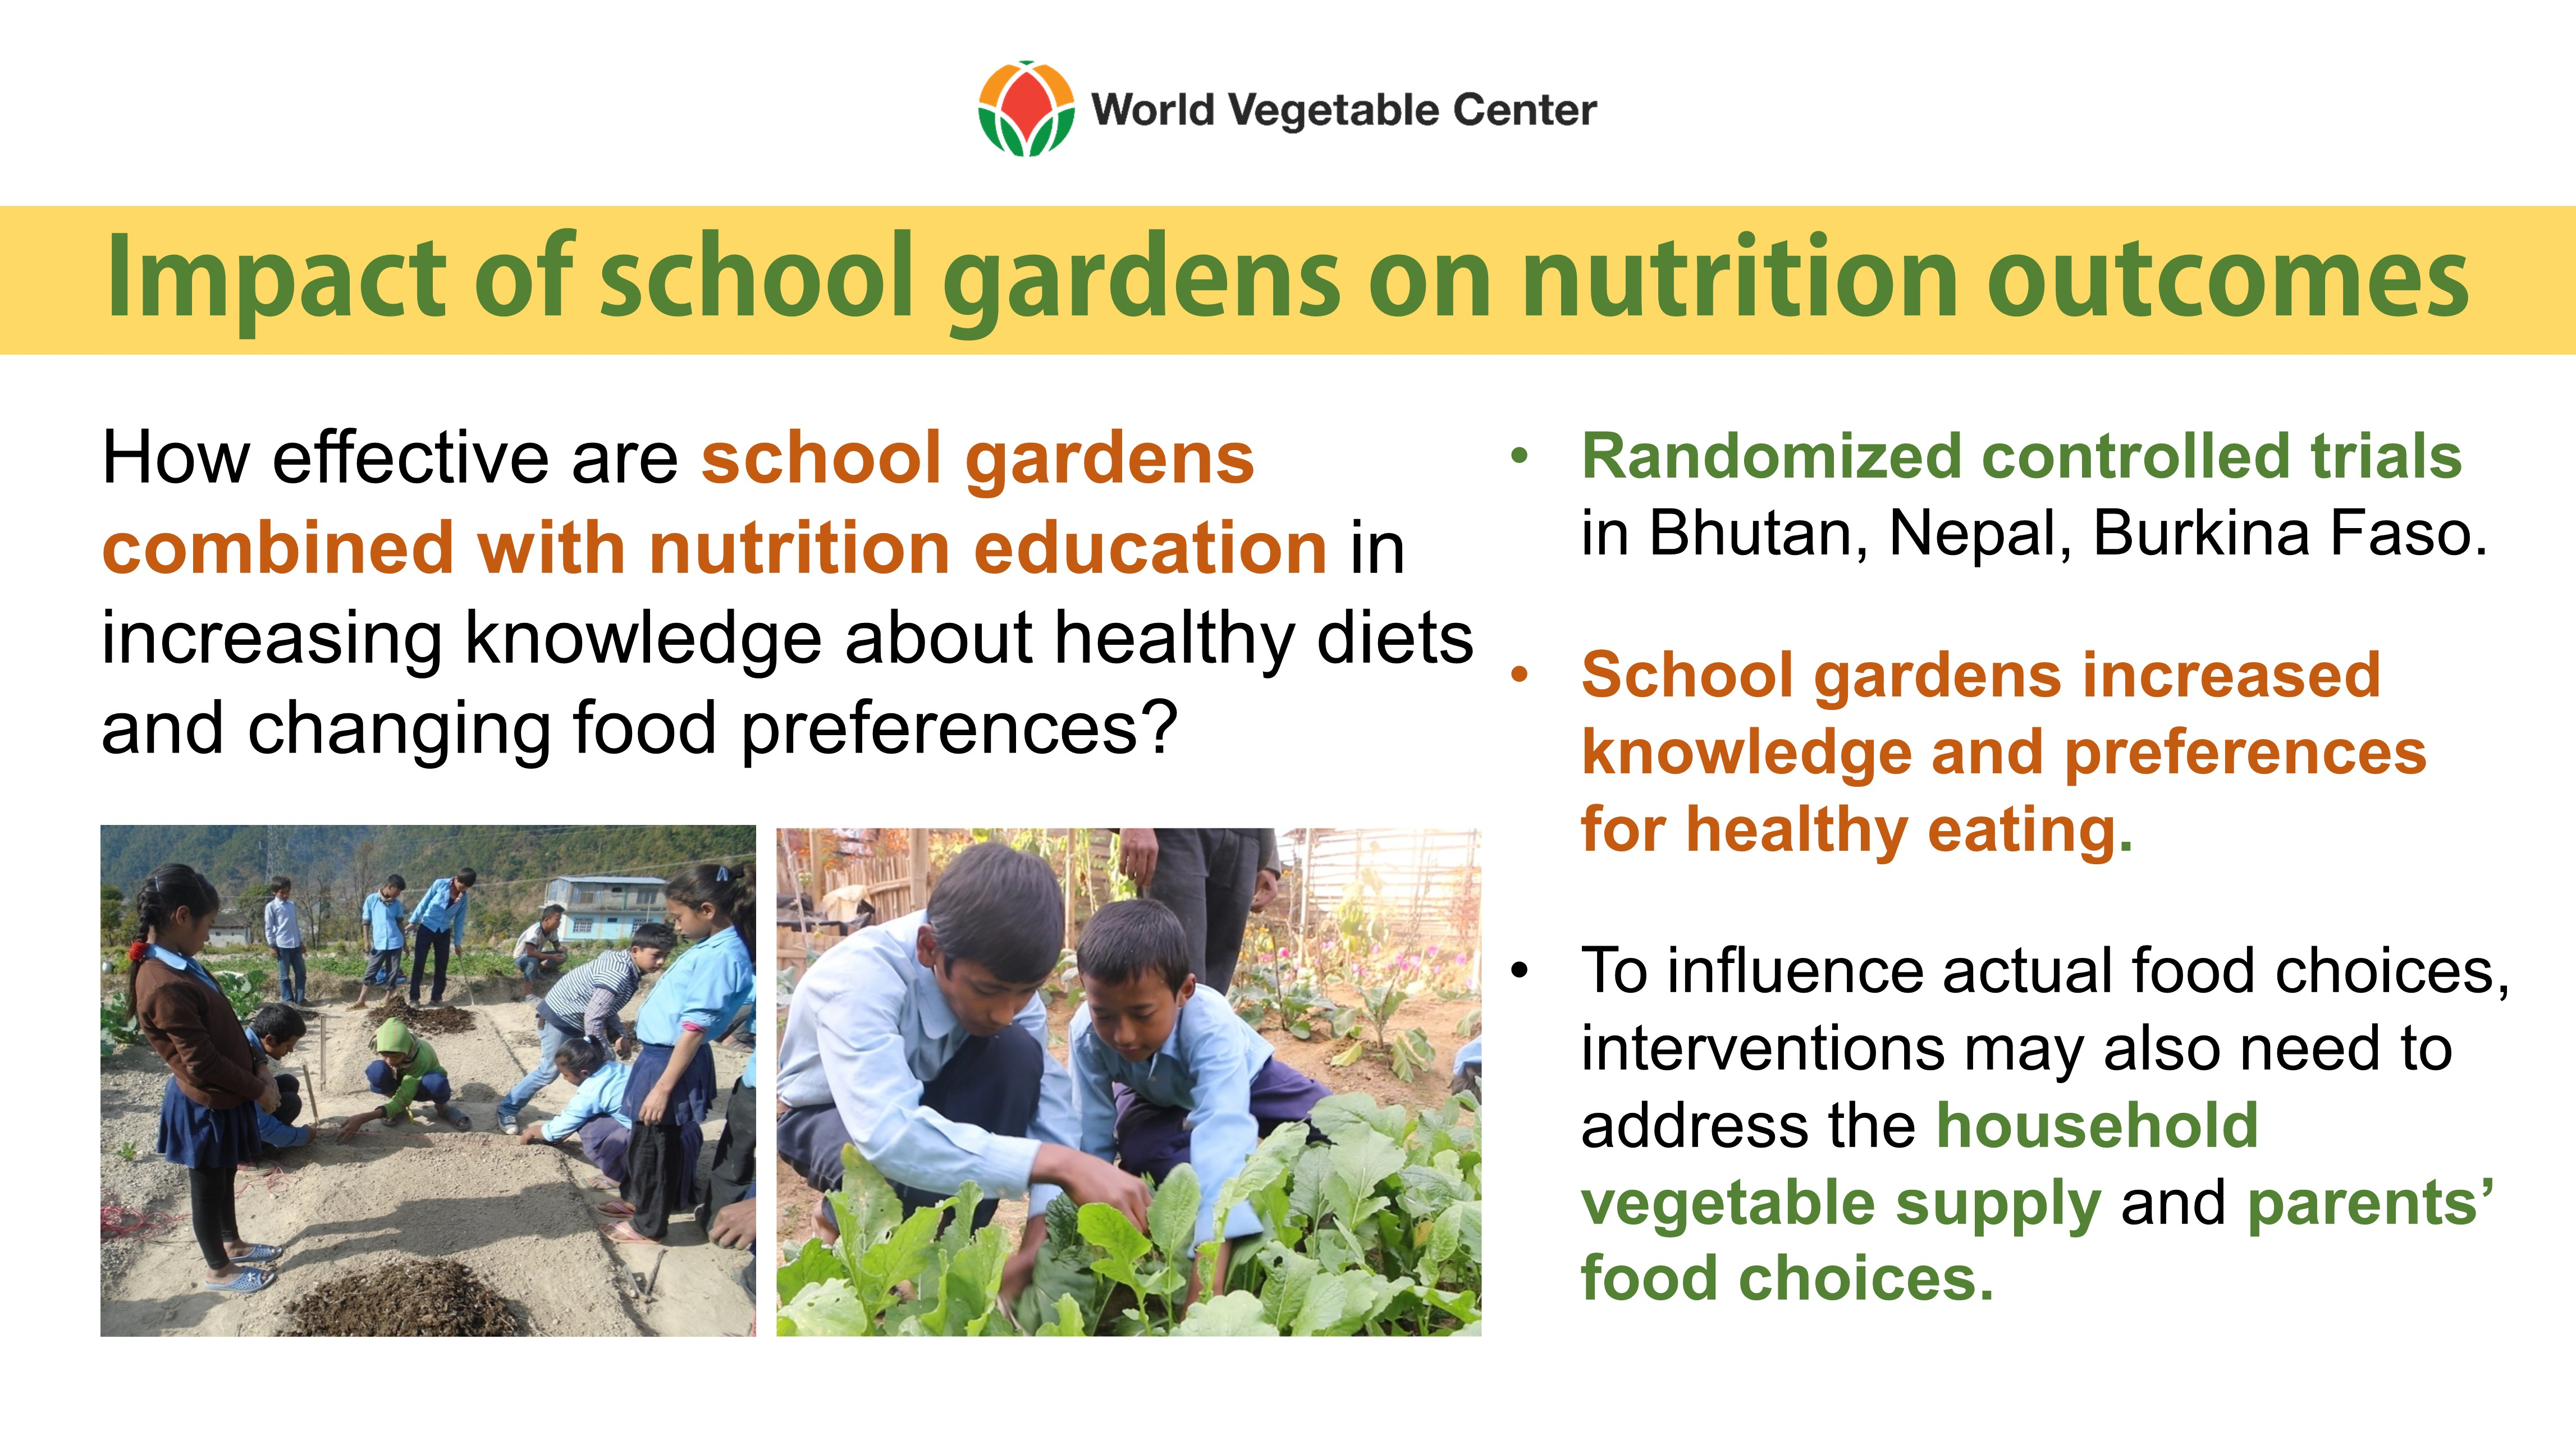 Impact of School Gardens on Nutrition Outcomes